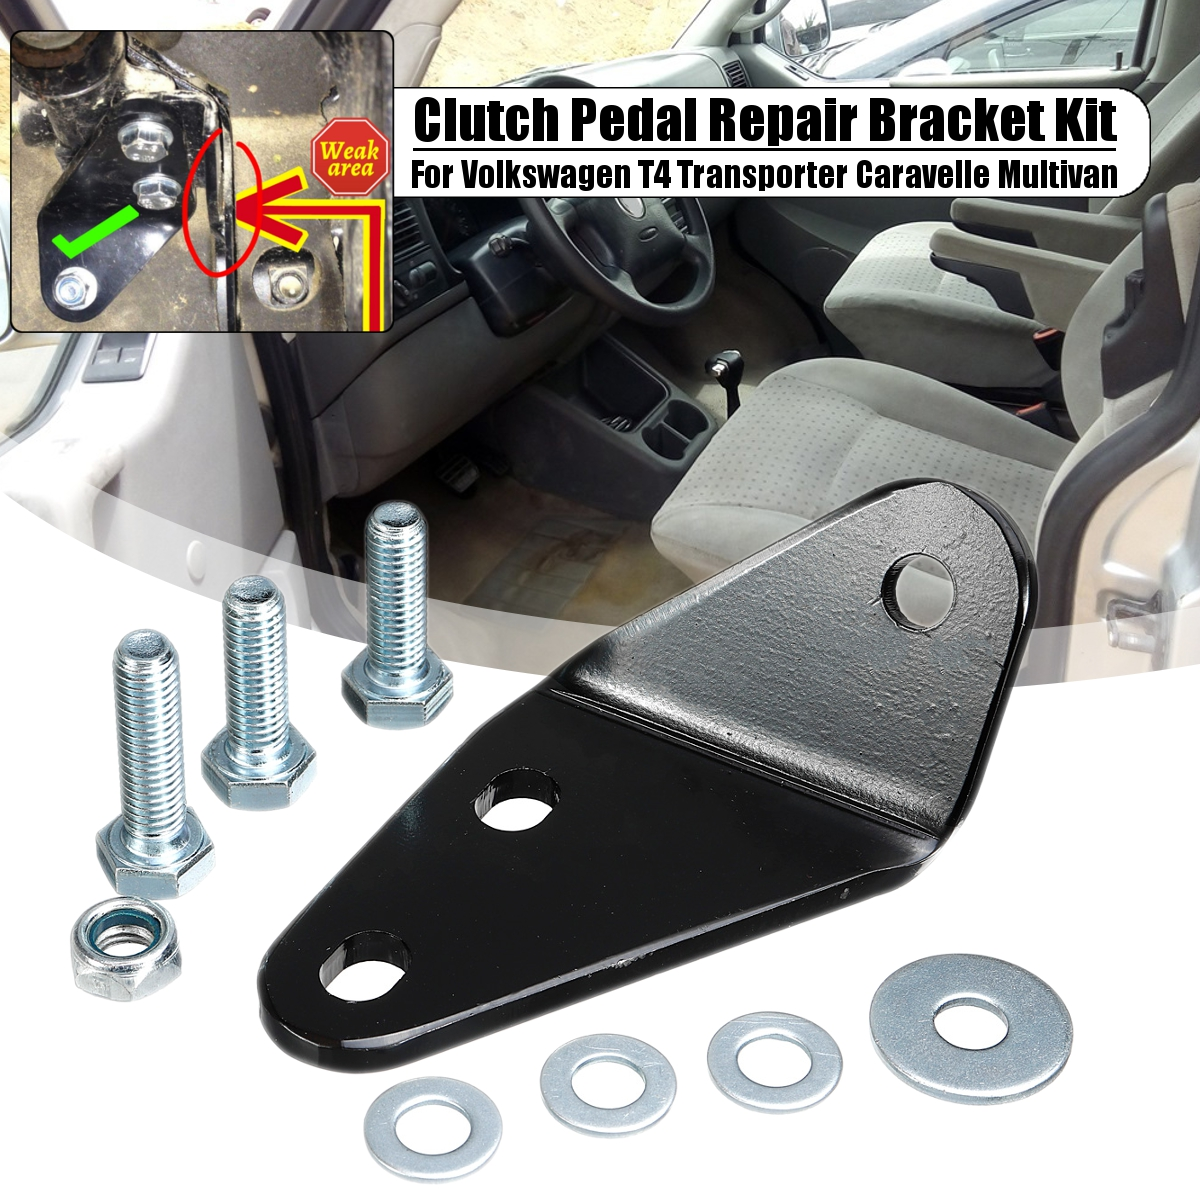 Car Clutch Pedal Repair Bracket Kit For Volkswagen T4 Transporter Caravelle Multivan Replacement